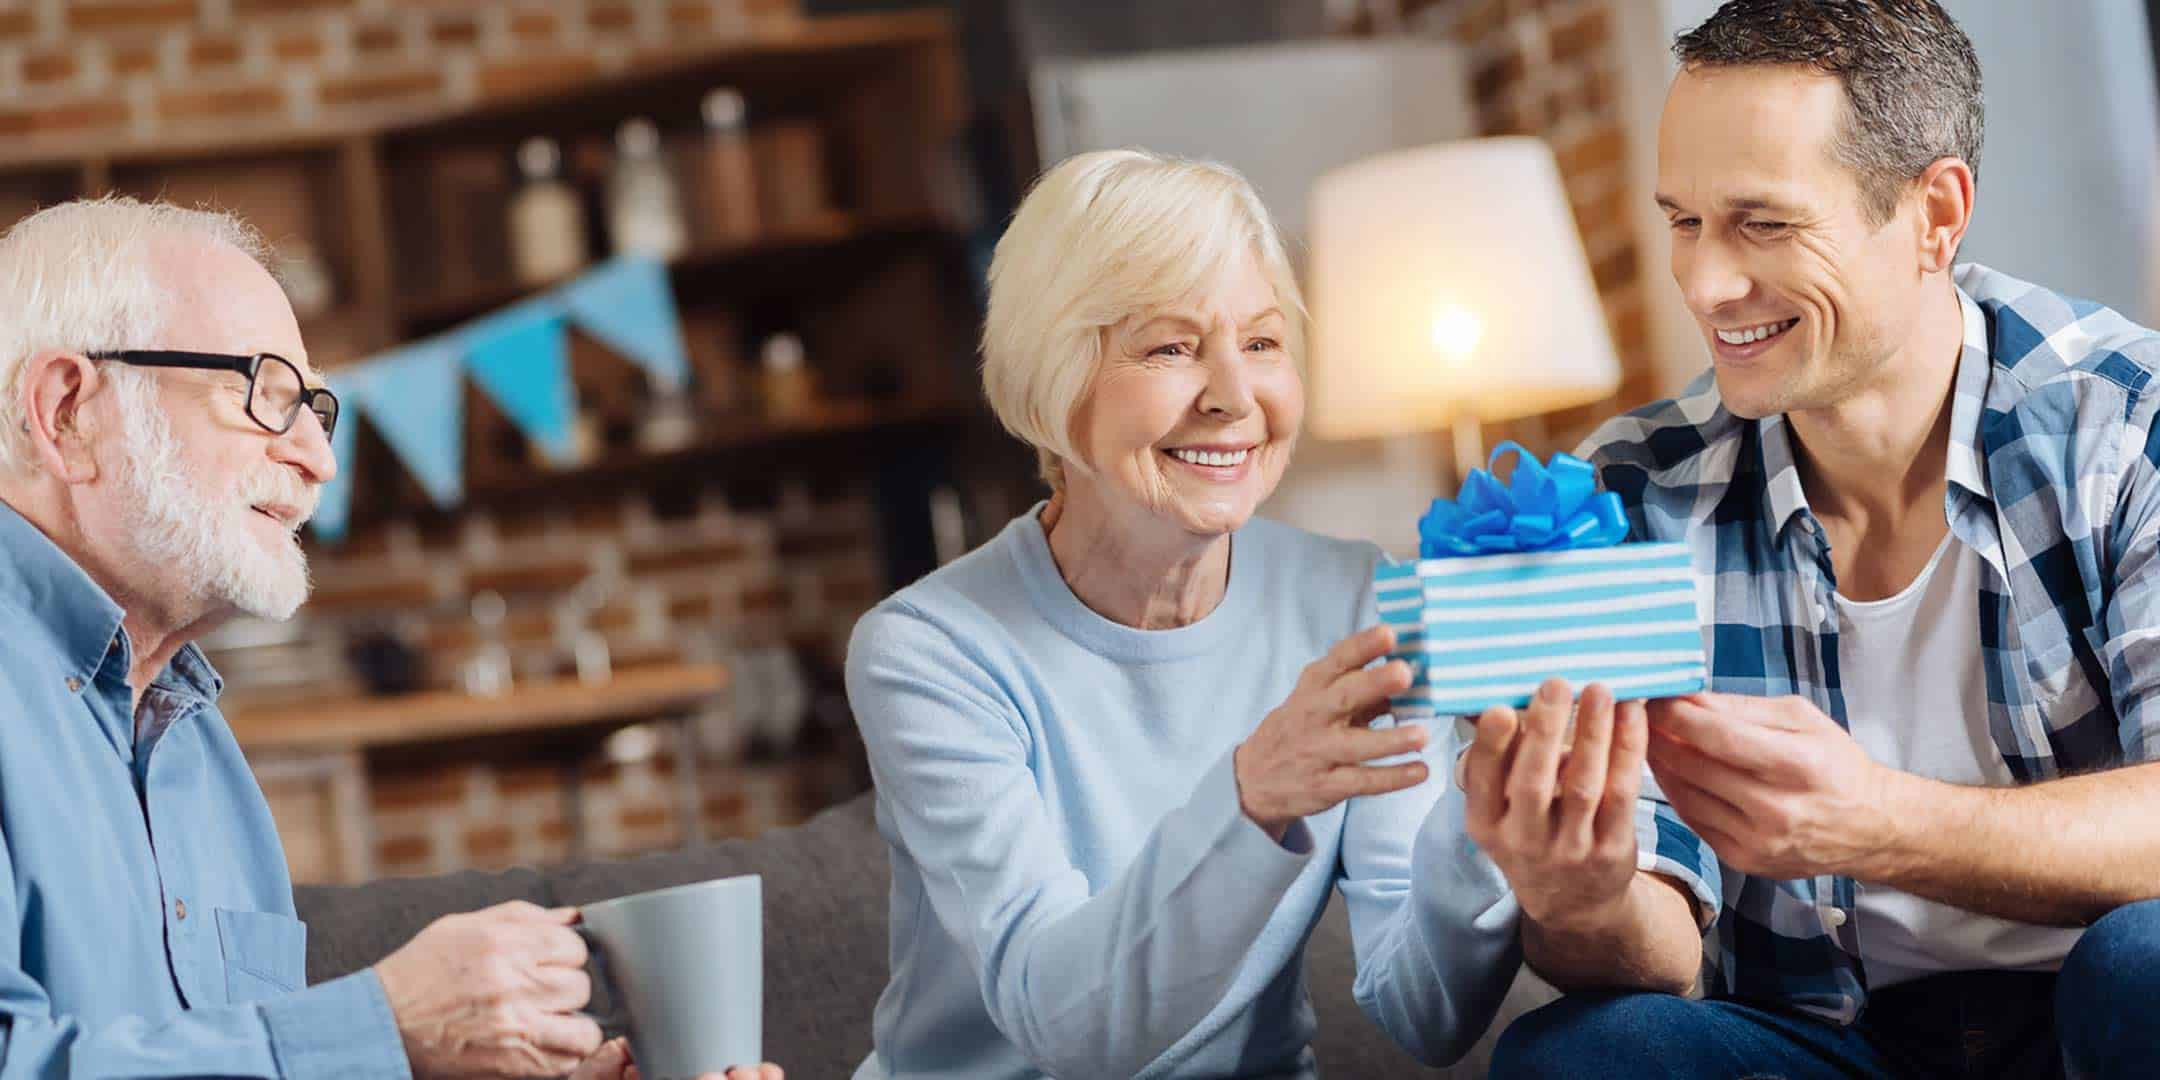 Best ideas about Gift Ideas For Elderly Man . Save or Pin Gifts for Elderly Friends & Loved es 74 Great Ideas Now.